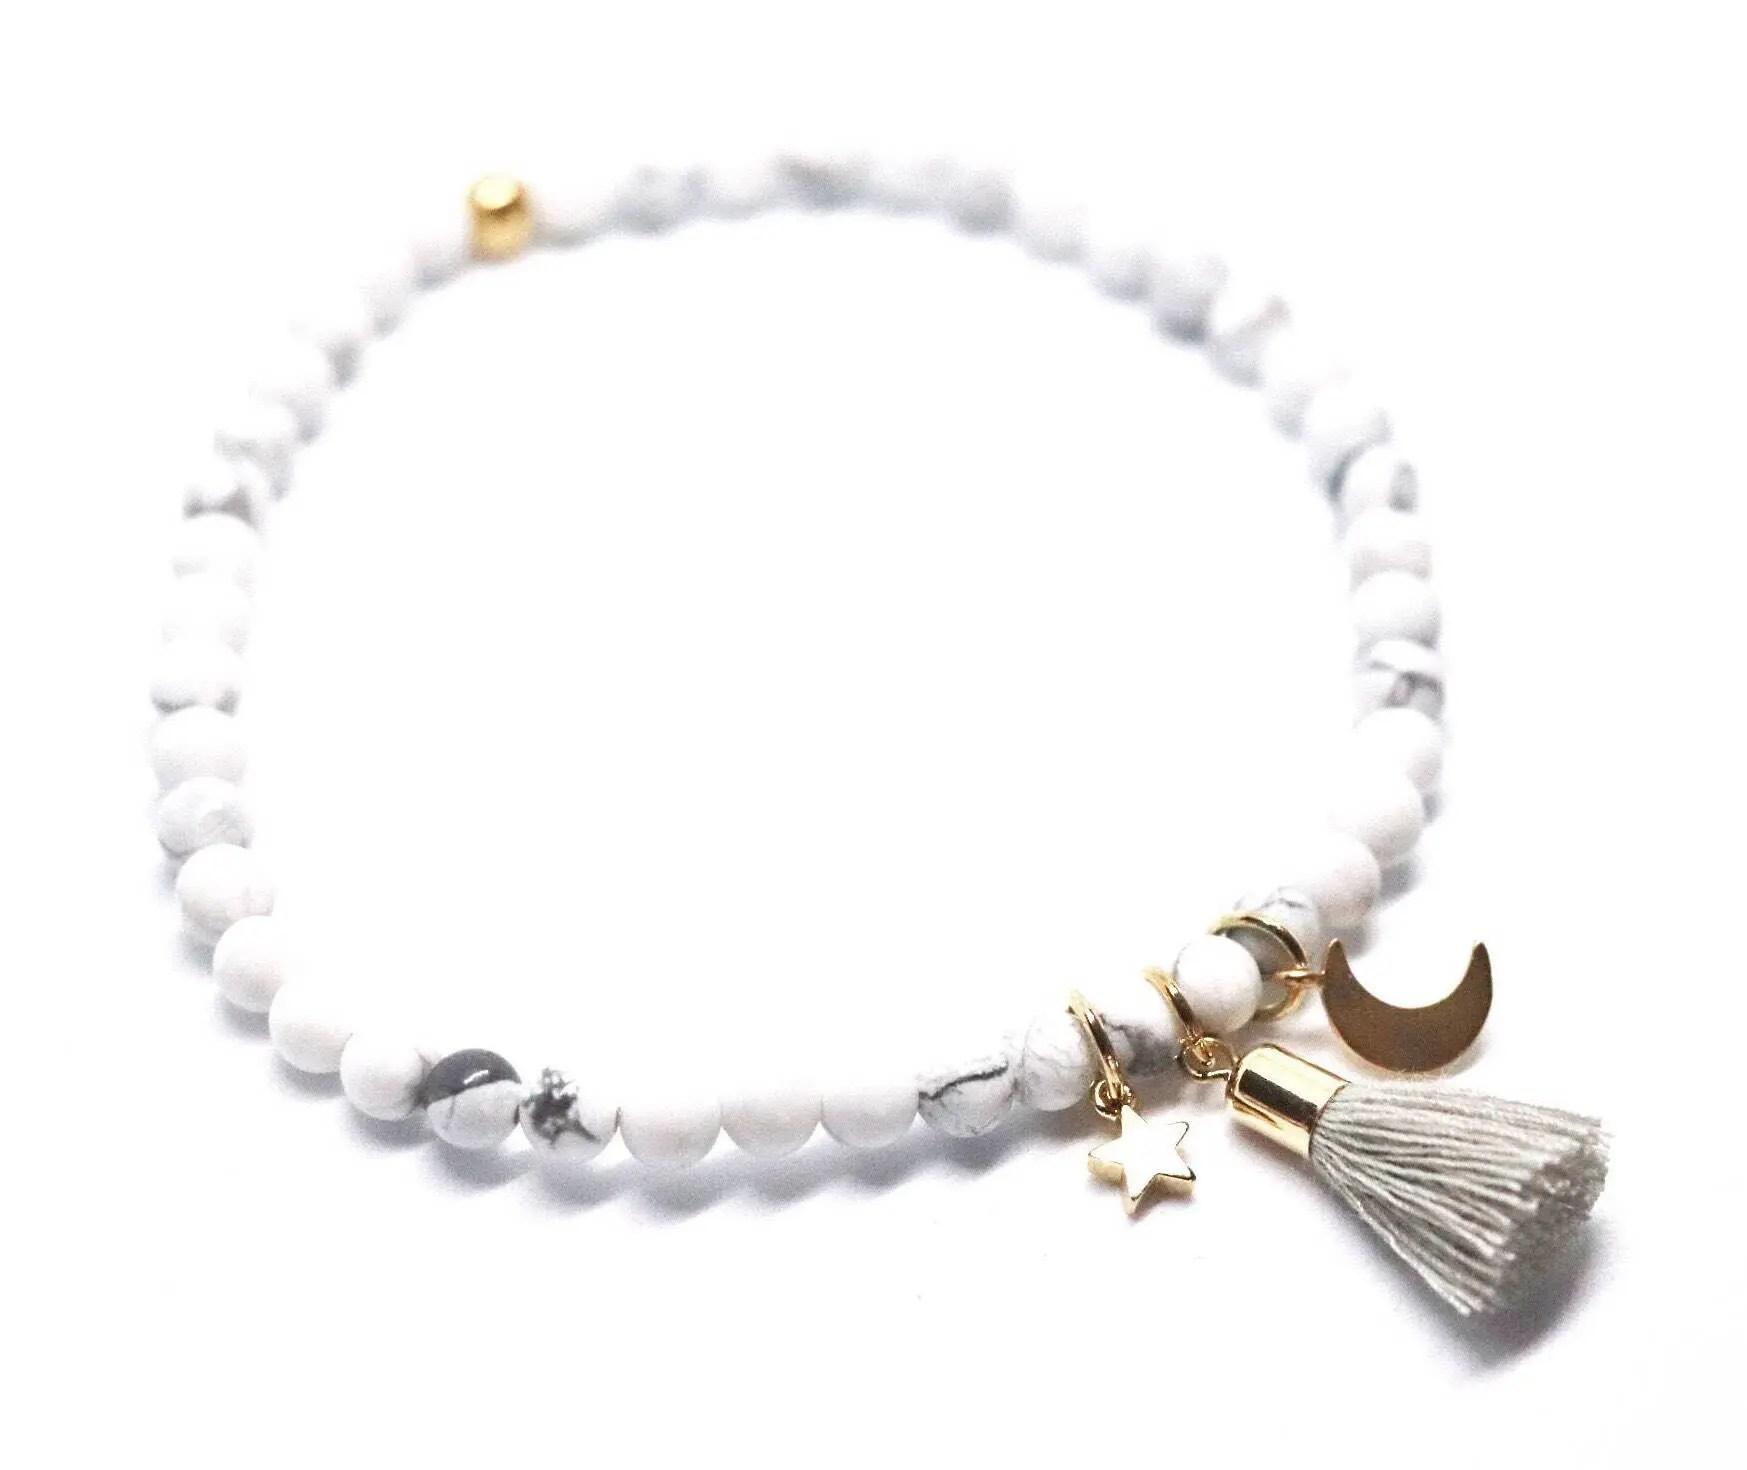 Star and moon howlite beaded bracelet with grey tassel